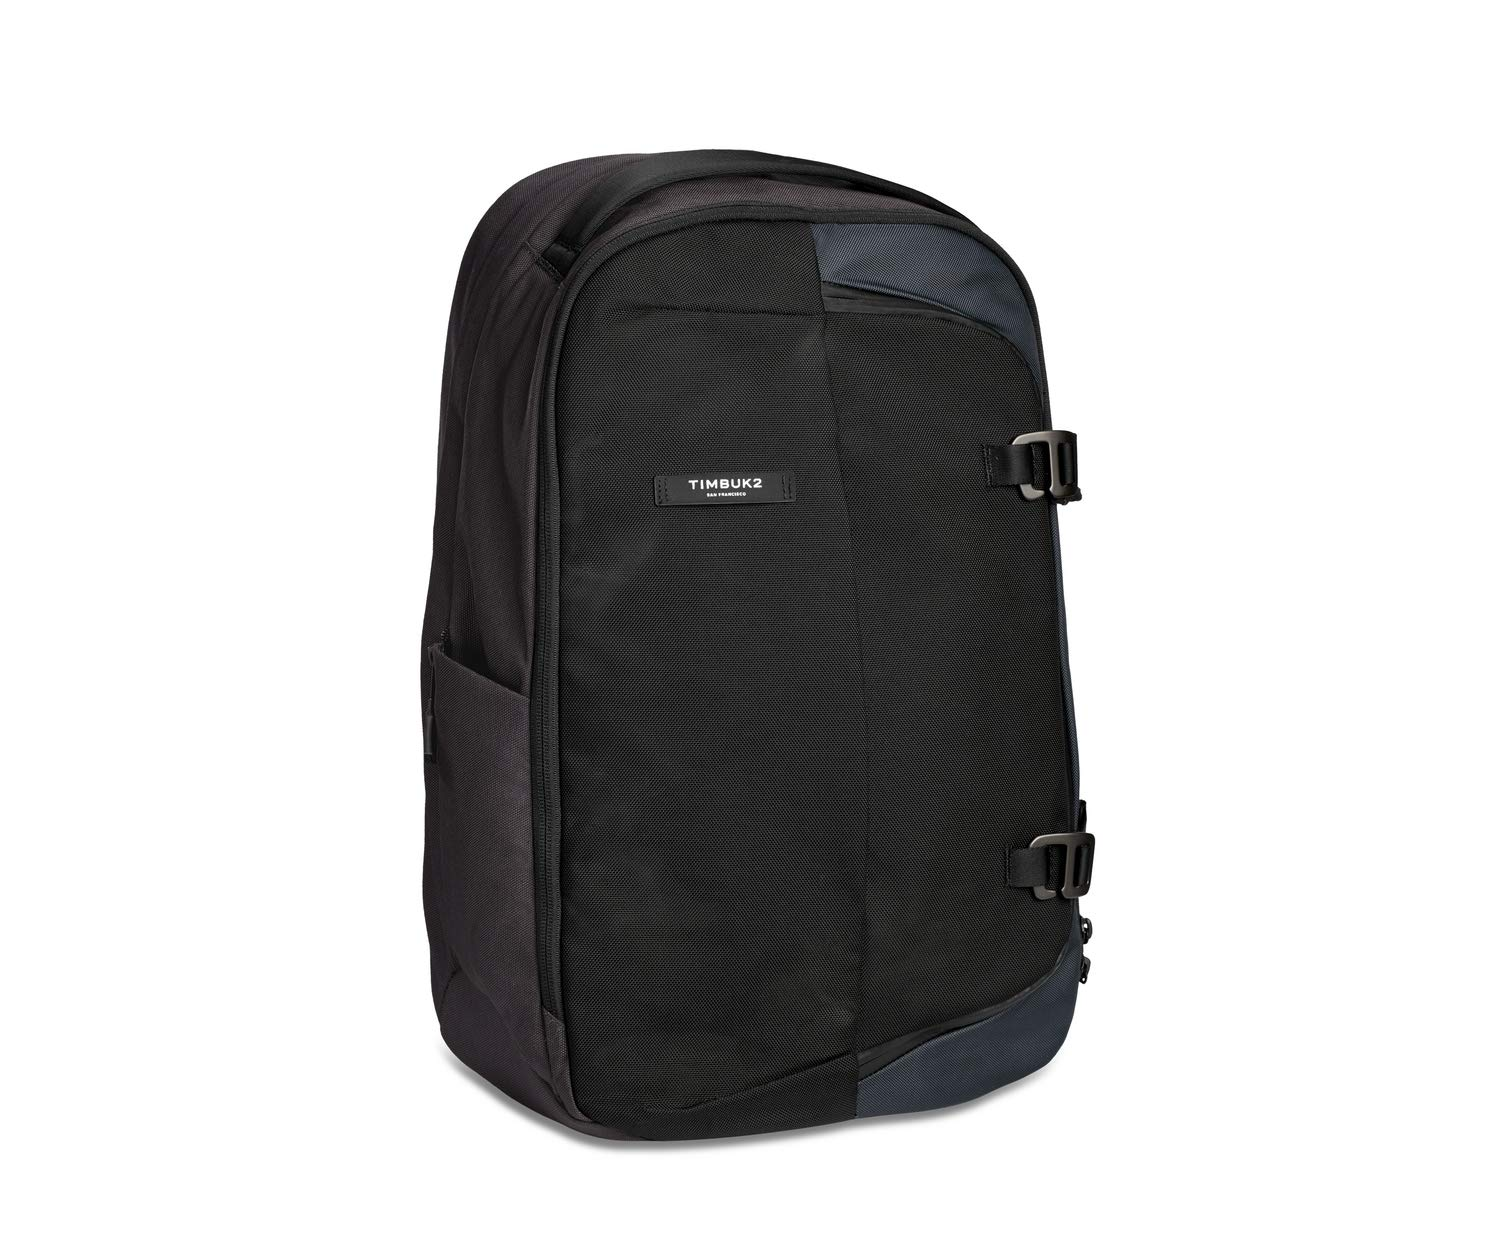 Timbuk2 Never Check Expandable Backpack, Night Sky by Timbuk2